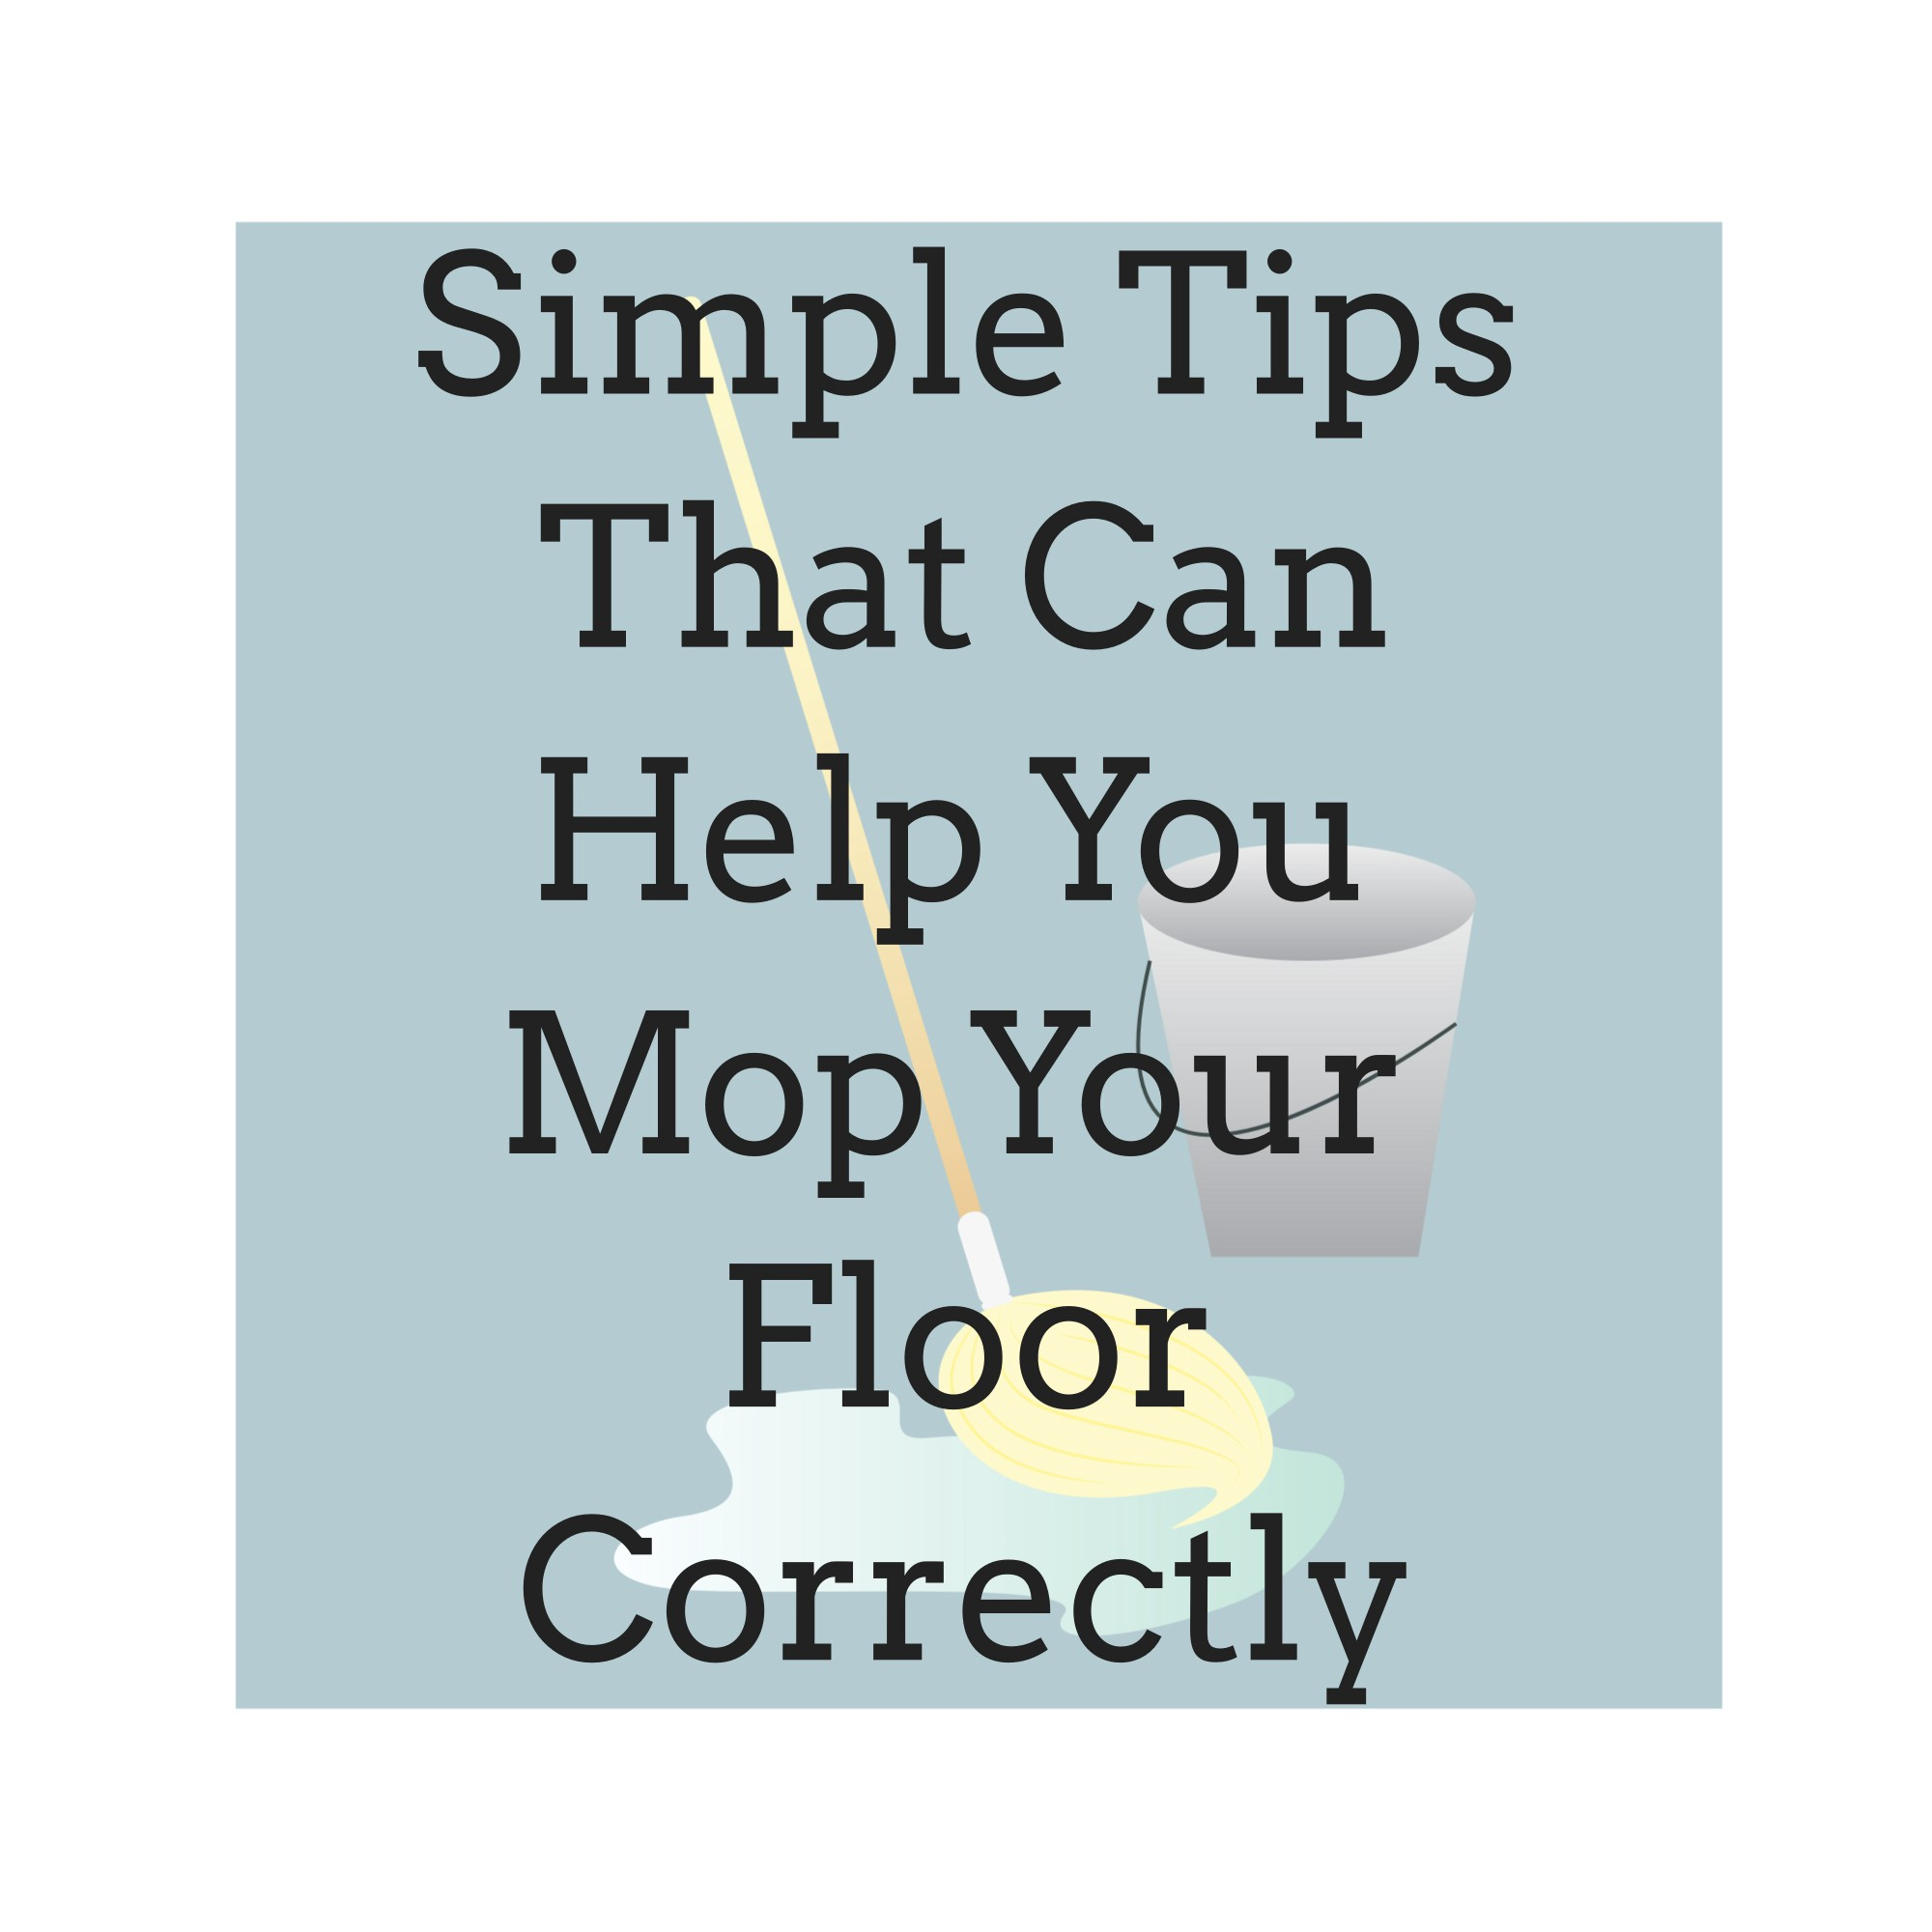 Mopping The Floor Best Ways To Cleaning Correctly